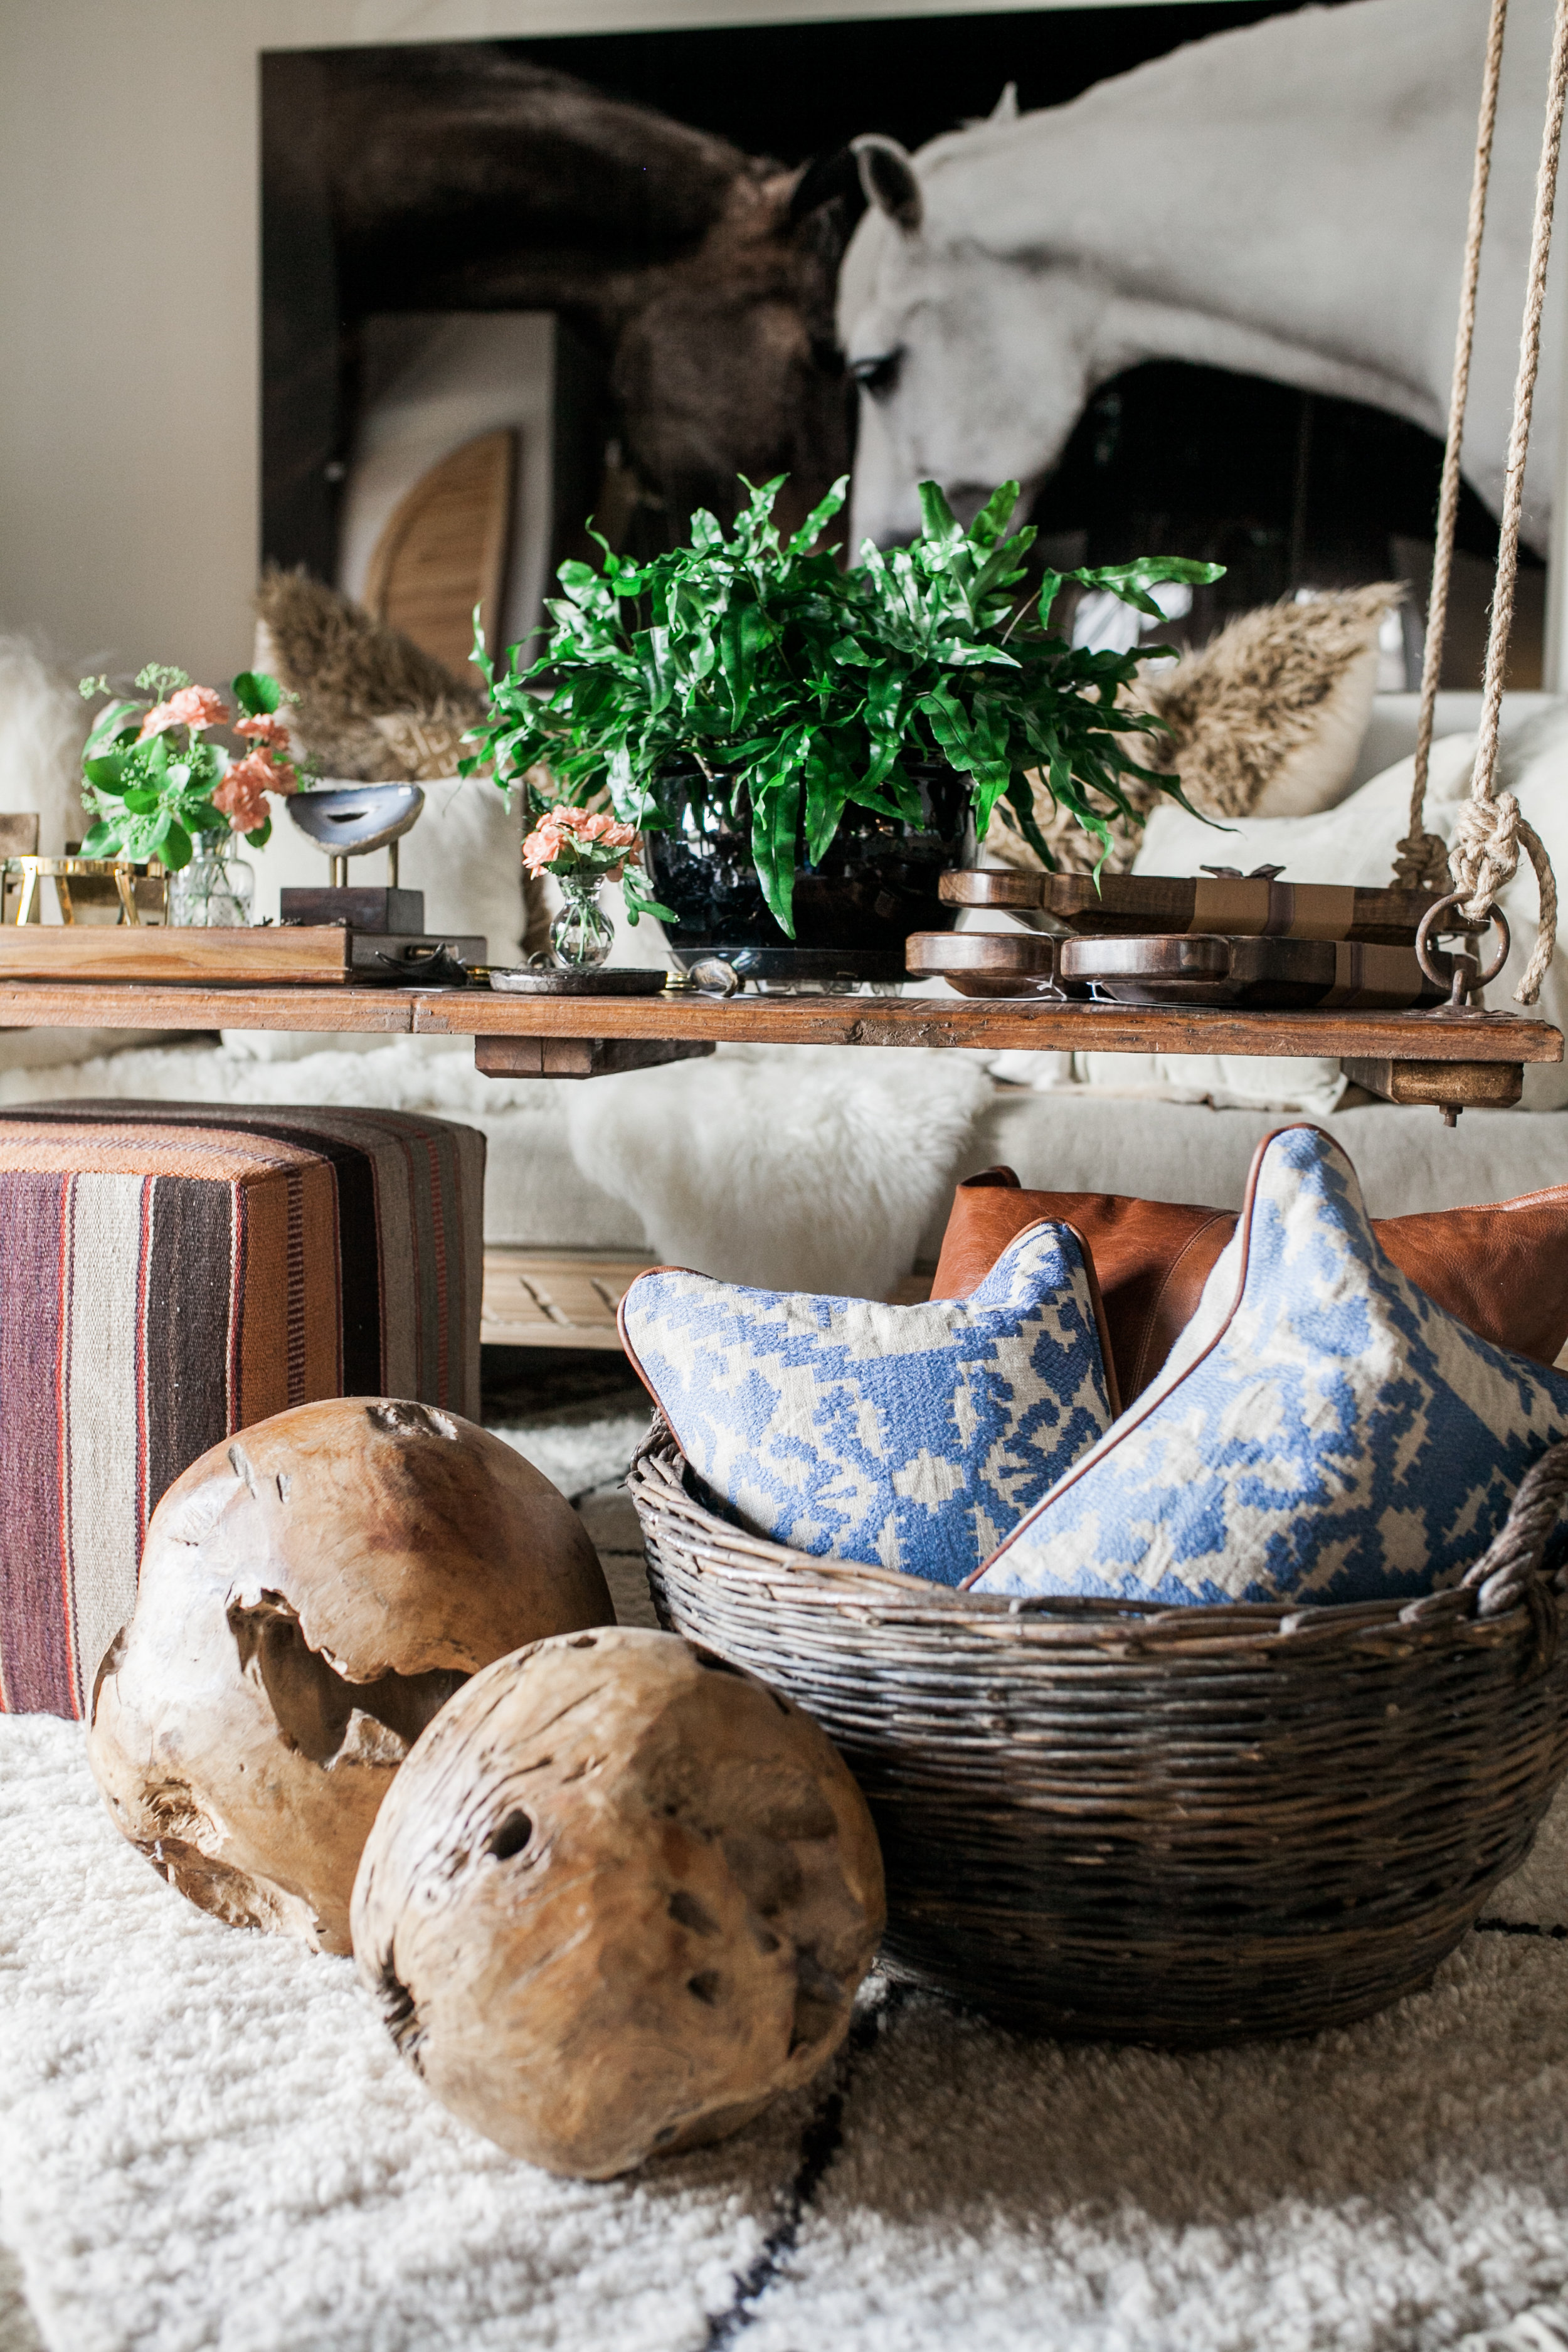 rugs pillows and decor.jpg